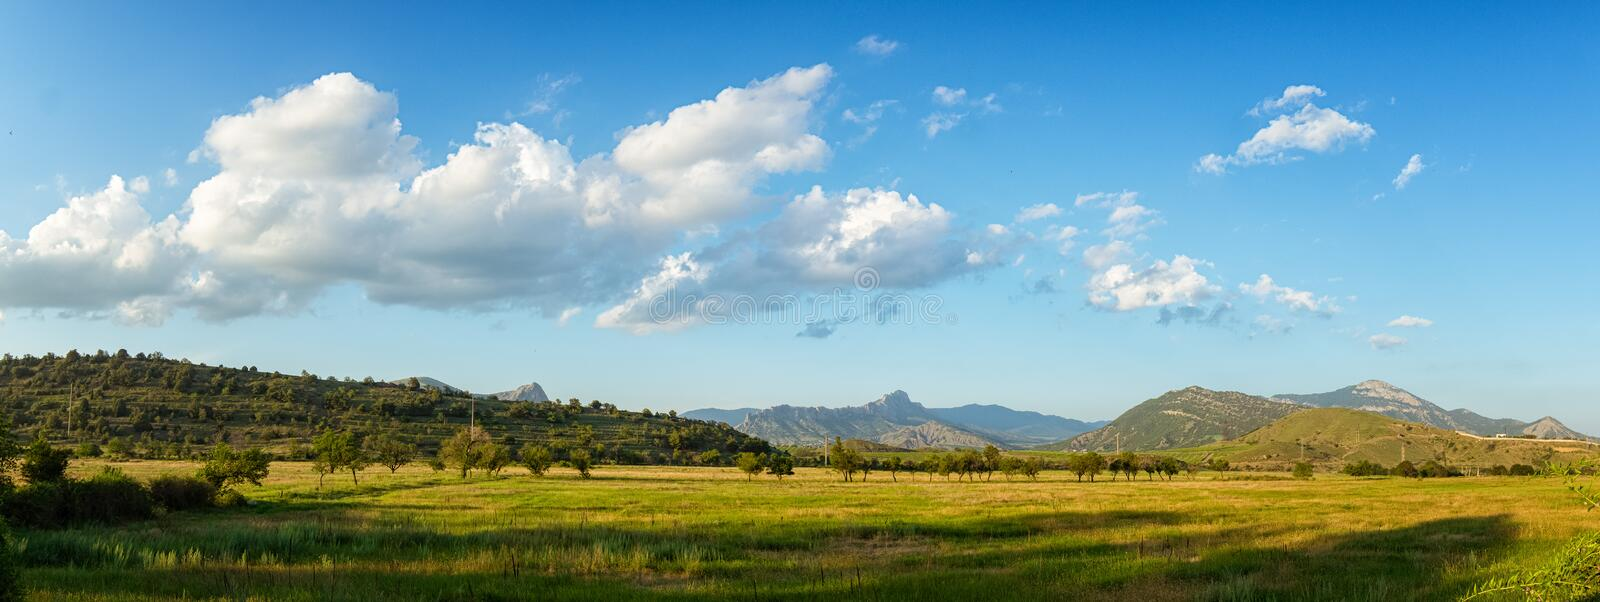 Summer landscape with hills and clouds, Crimea royalty free stock image